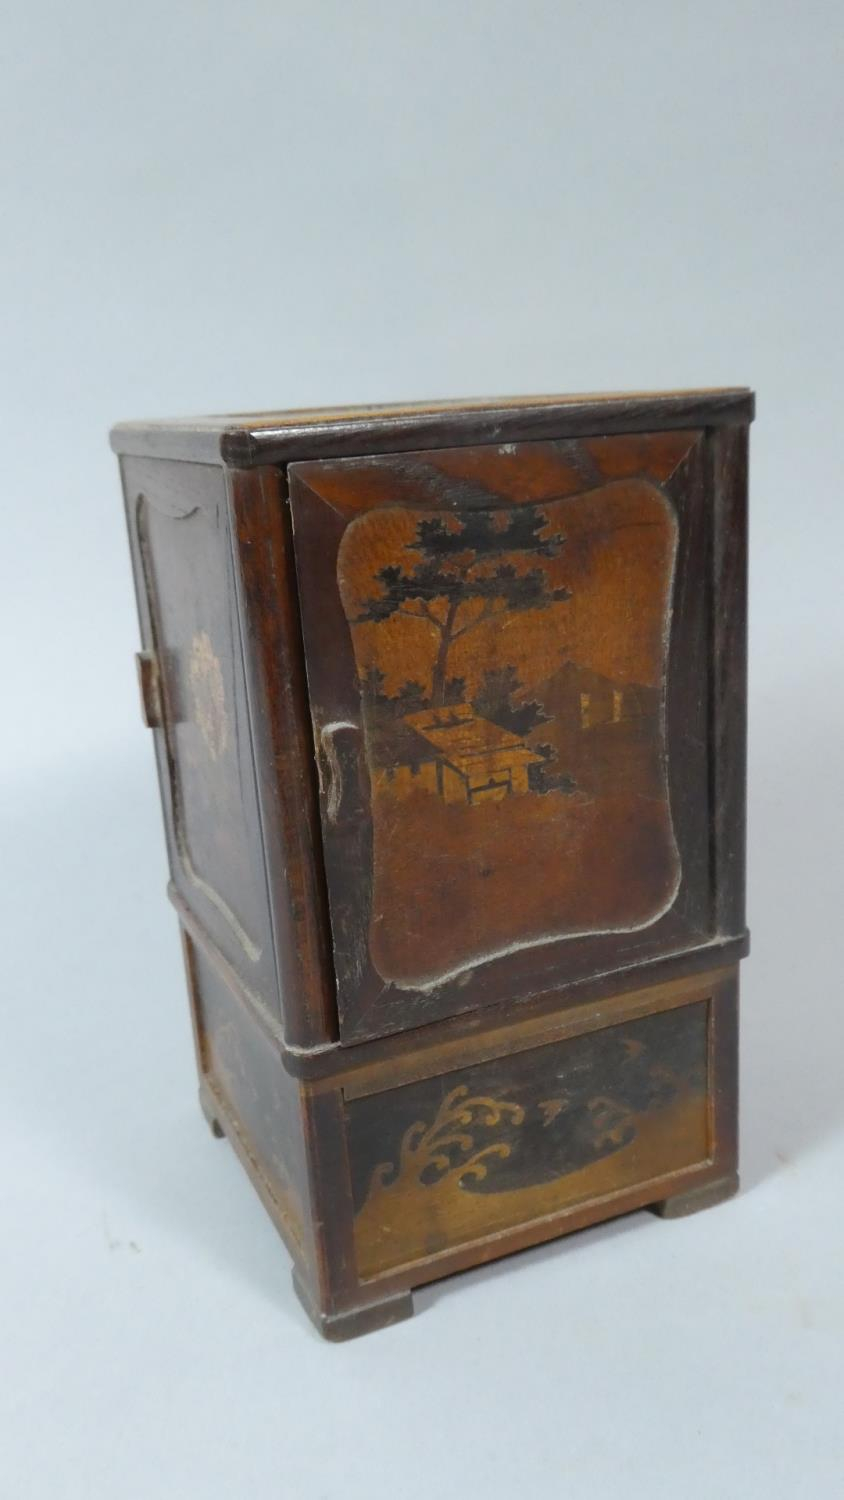 Lot 5 - A Miniature Japanese Cigarette Box with Four Hinged Doors and Inlaid Decoration, 16cm High